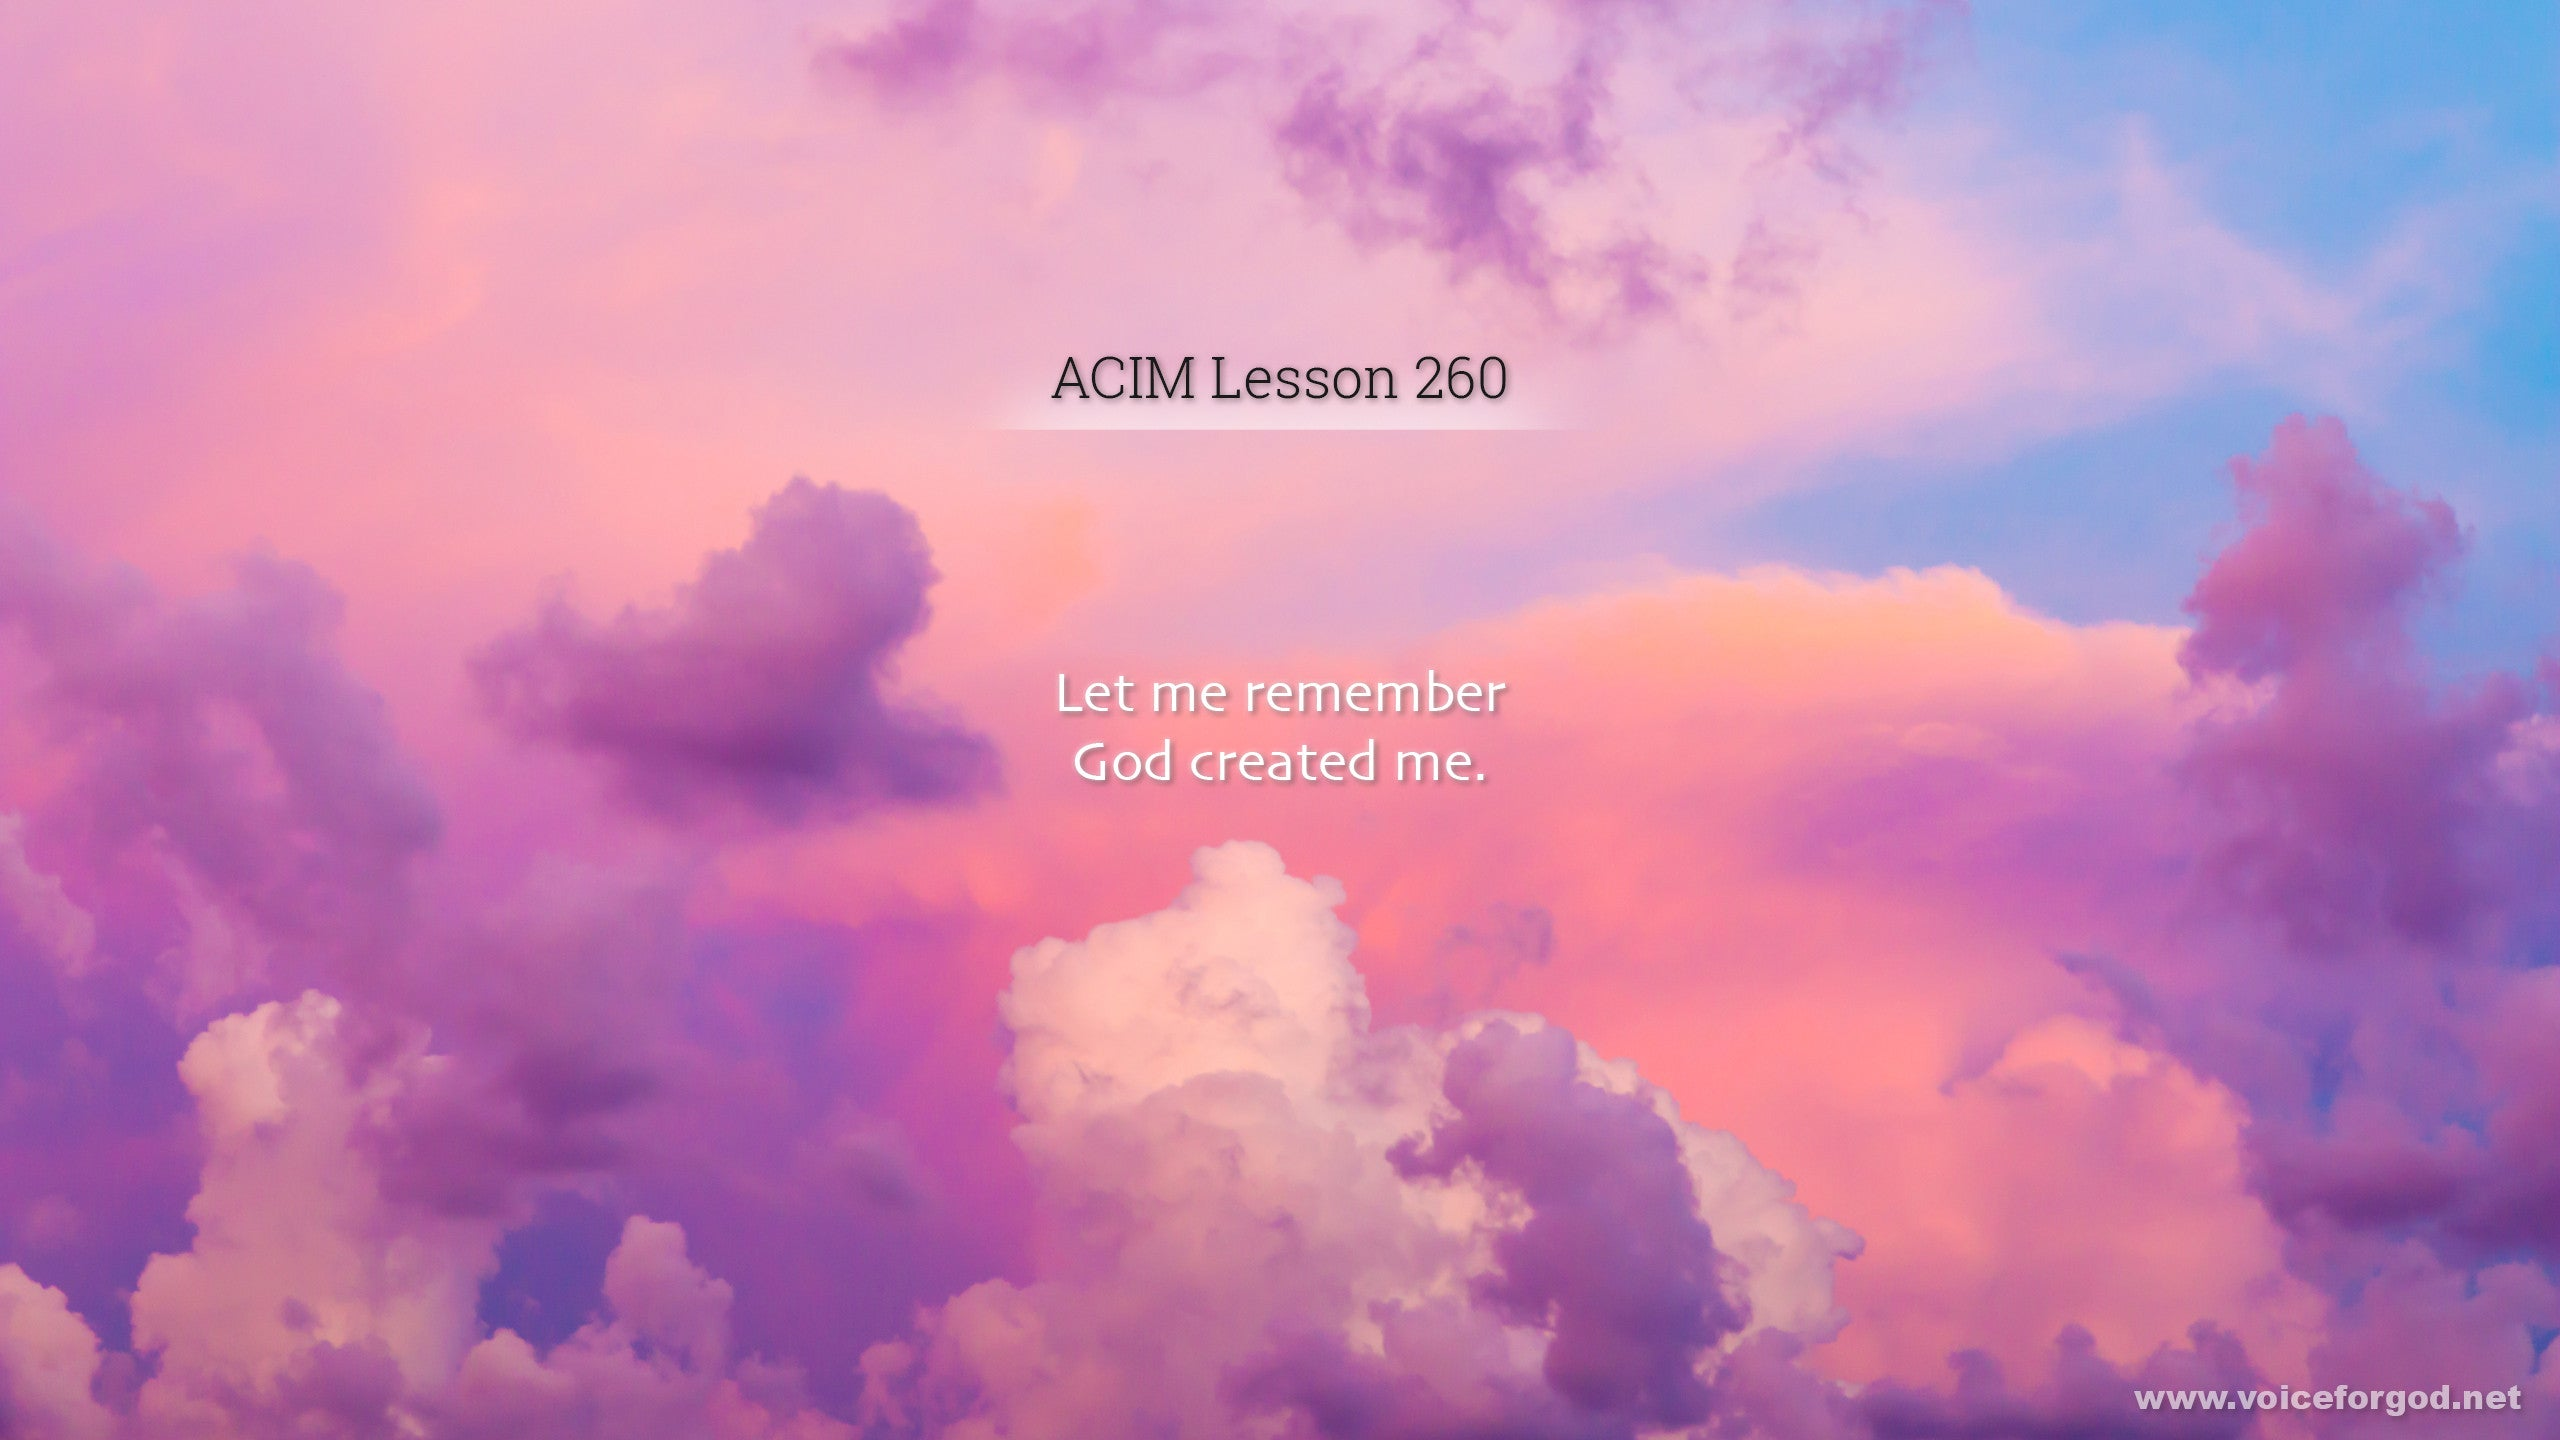 ACIM Lesson 260 - A Course in Miracles Workbook Lesson 260